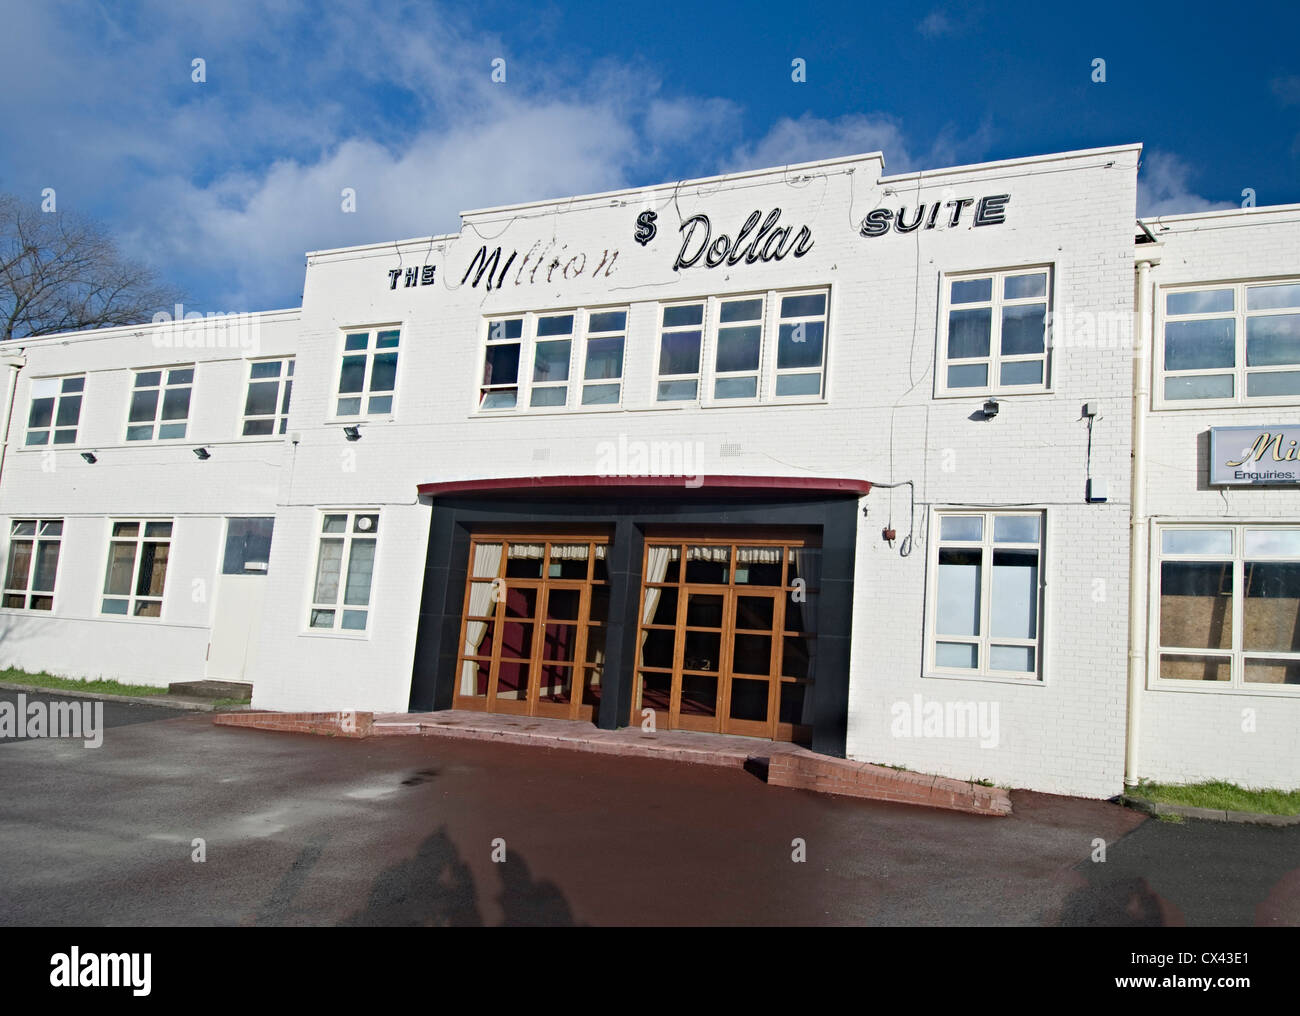 The million dollar suite Wolverhampton banquet hall Stock Photo